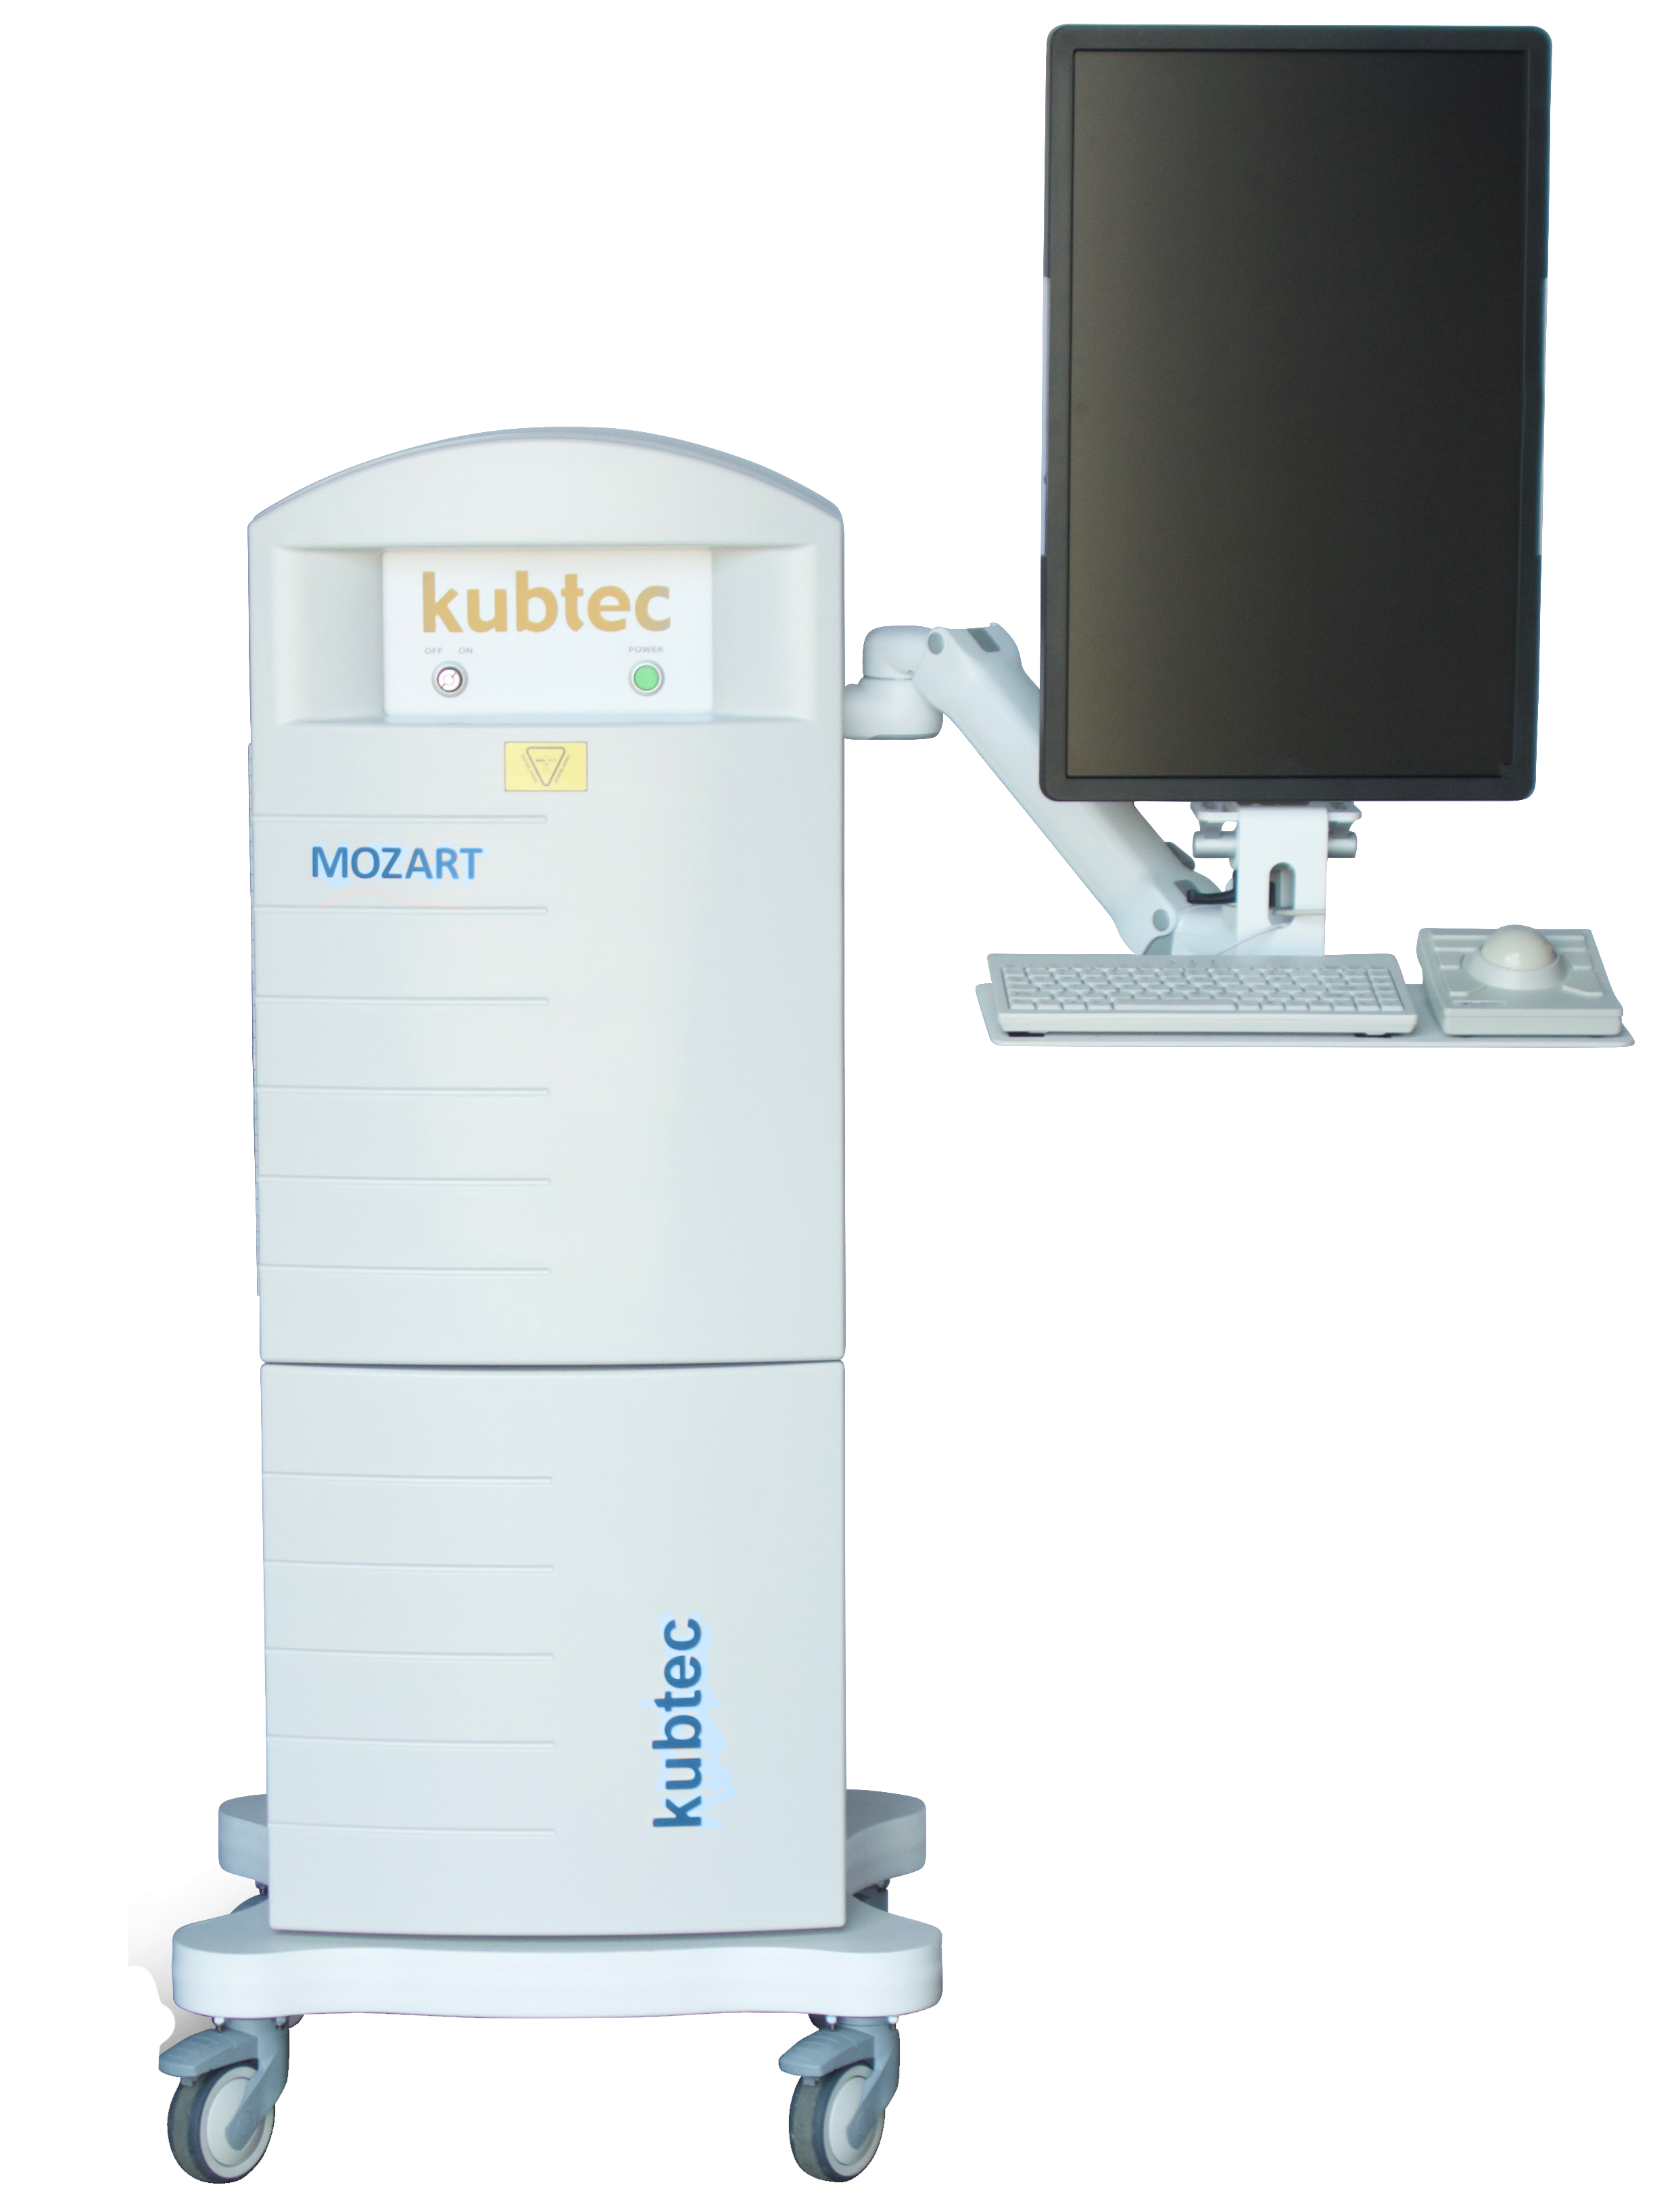 Picture of the Mozart device by Kubtec